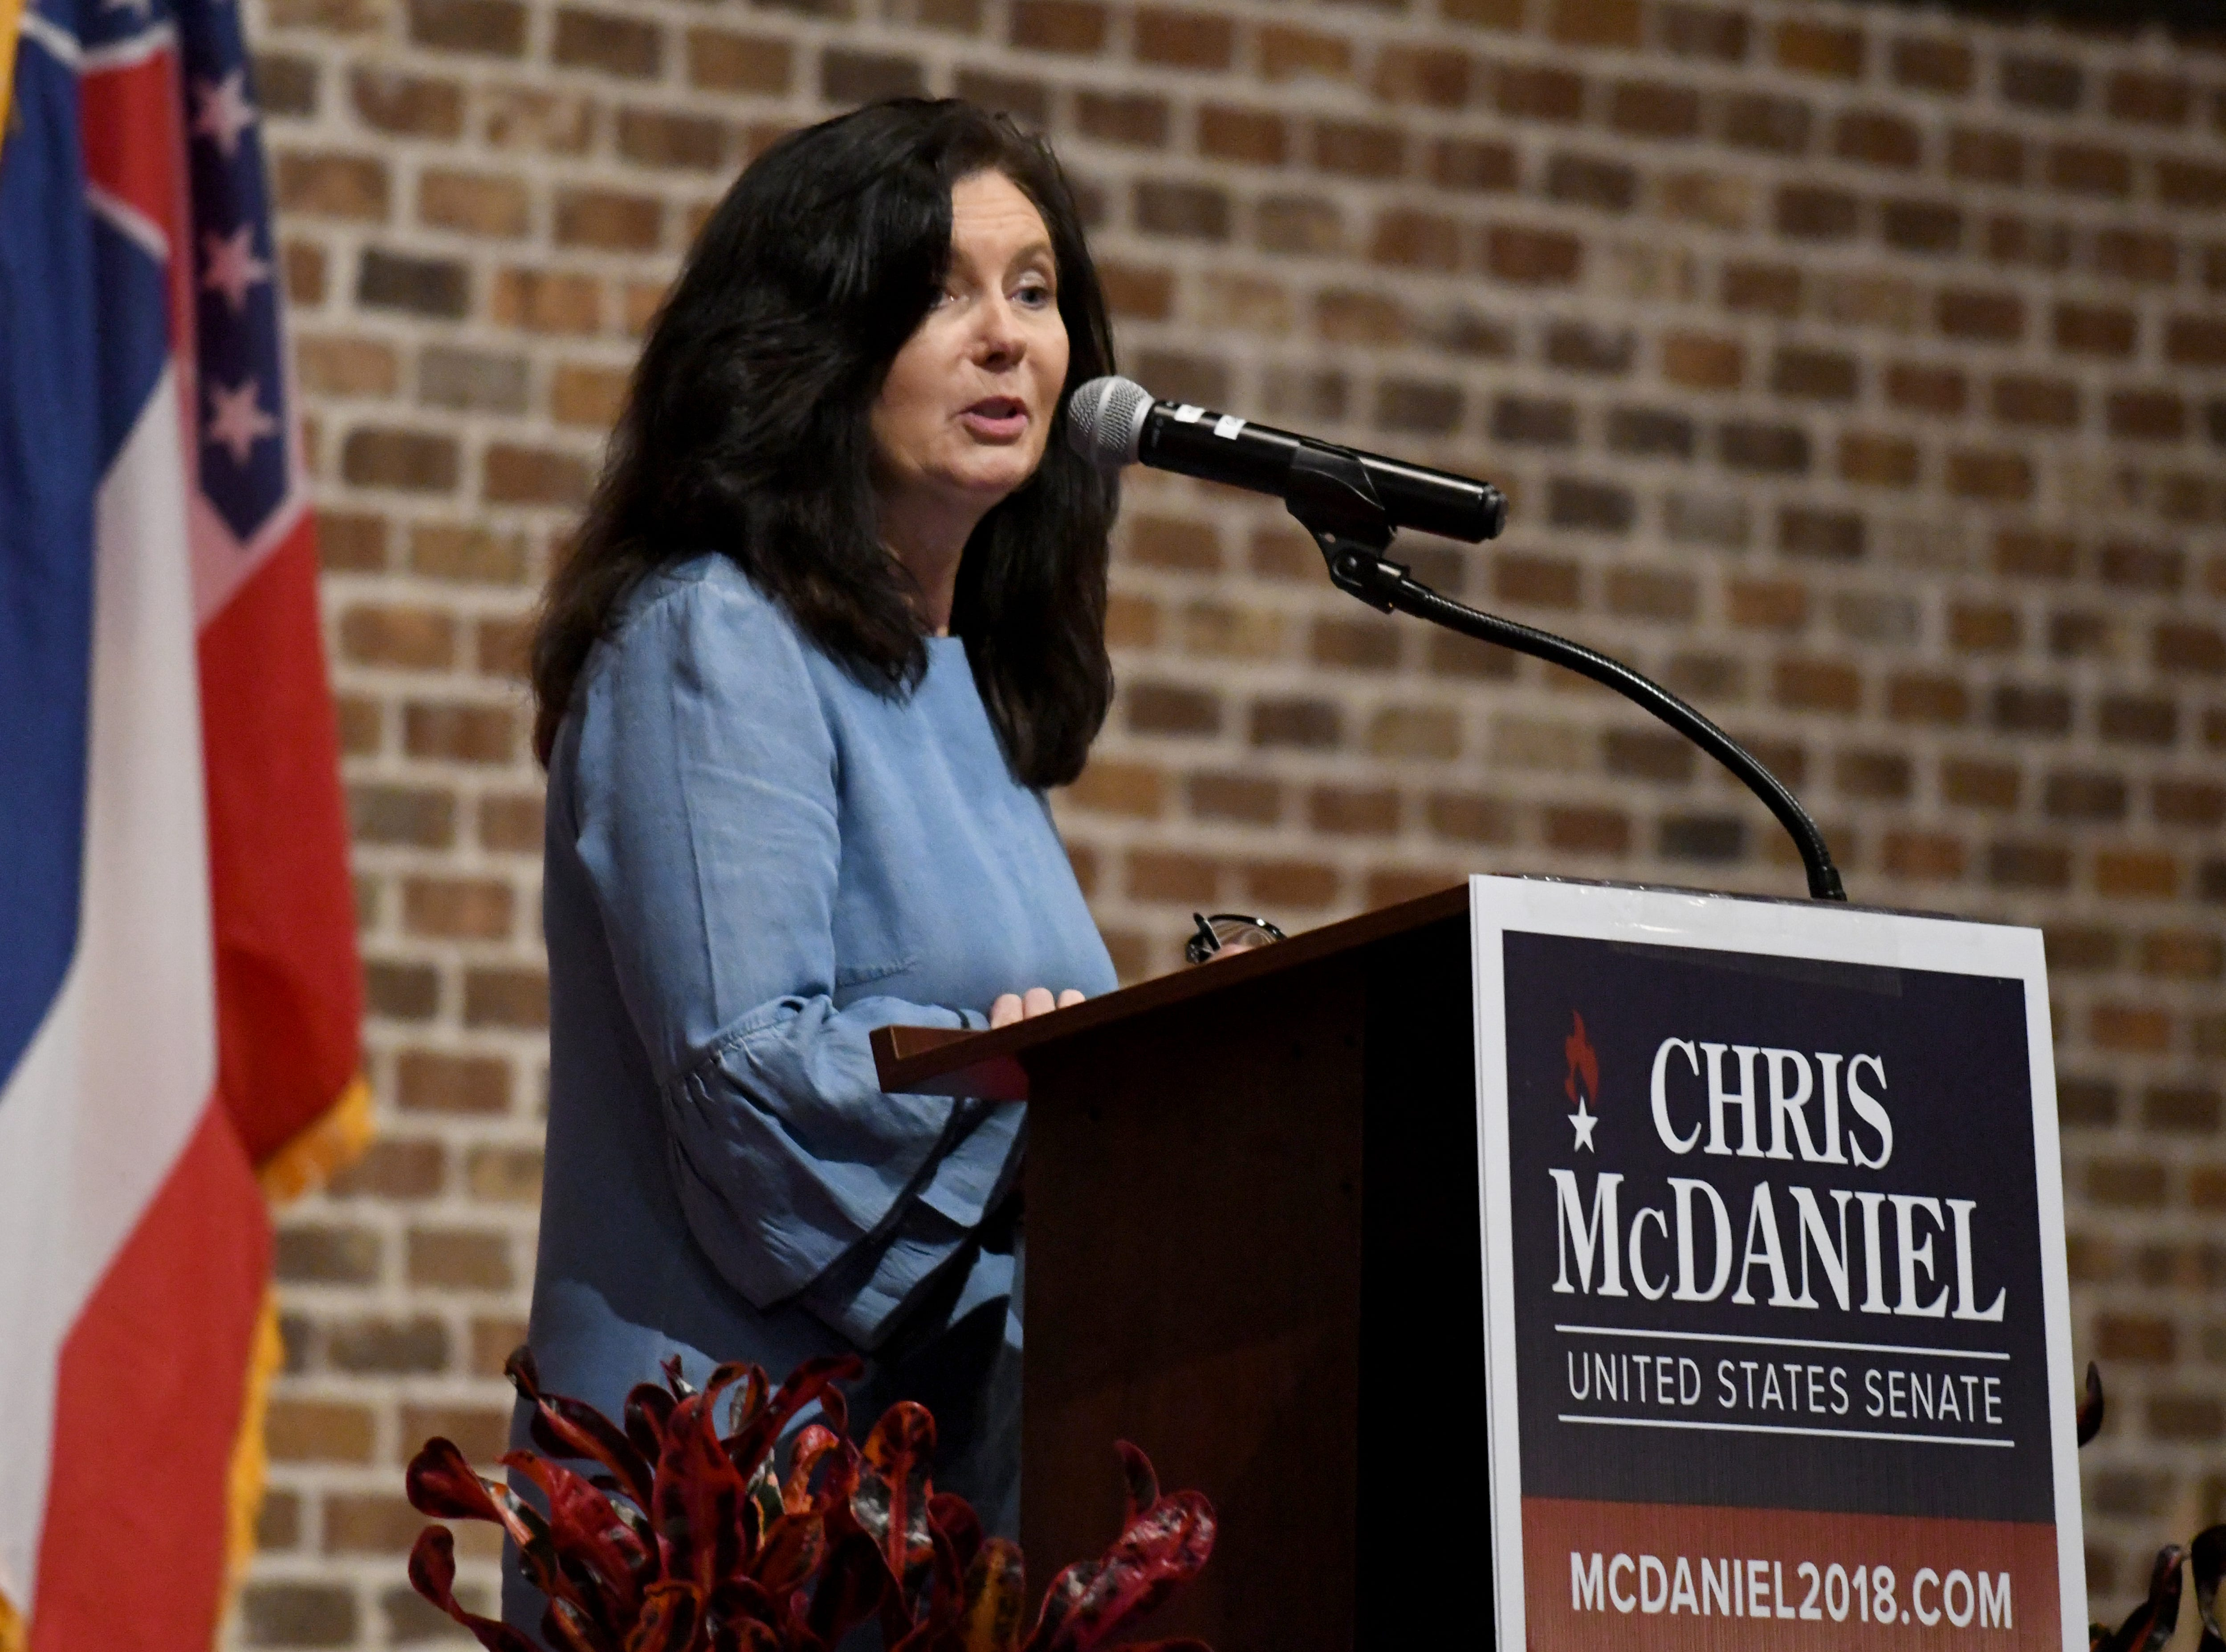 Angela Hill, state senator of District 40, speaks to Chris McDaniel supporters in Laurel on Tuesday, November 6, 2018. McDaniel looses the senate race to Hyde-Smith and Espy.